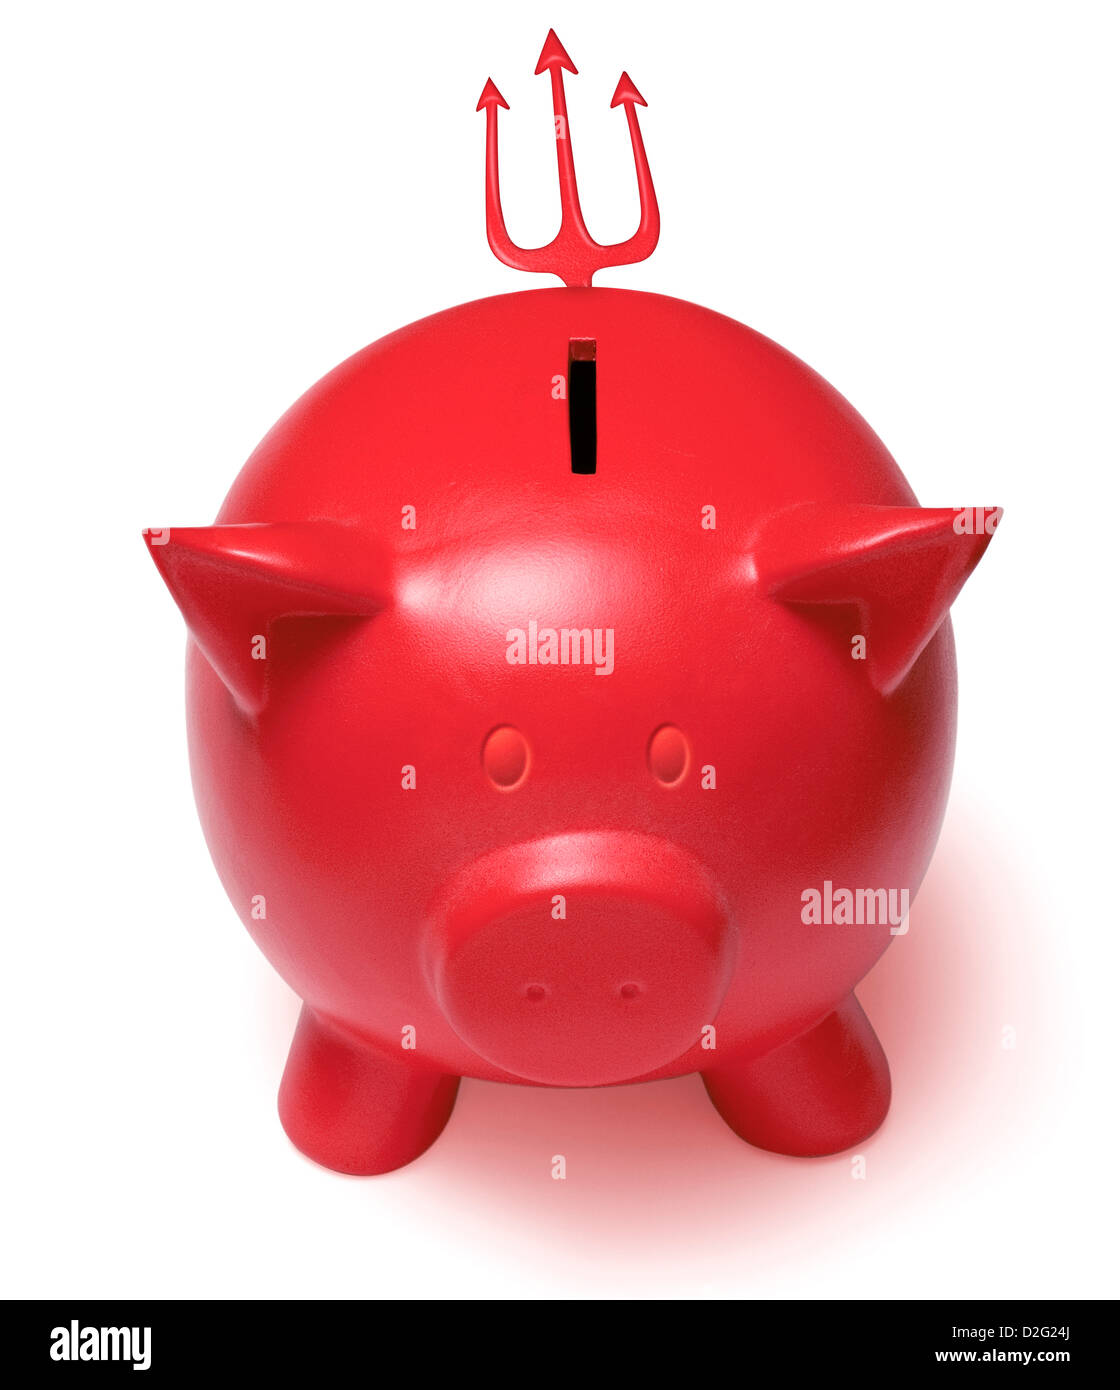 Red devil piggy bank with horned ears and a trident tail on a white background - bad bank banking concept - Stock Image